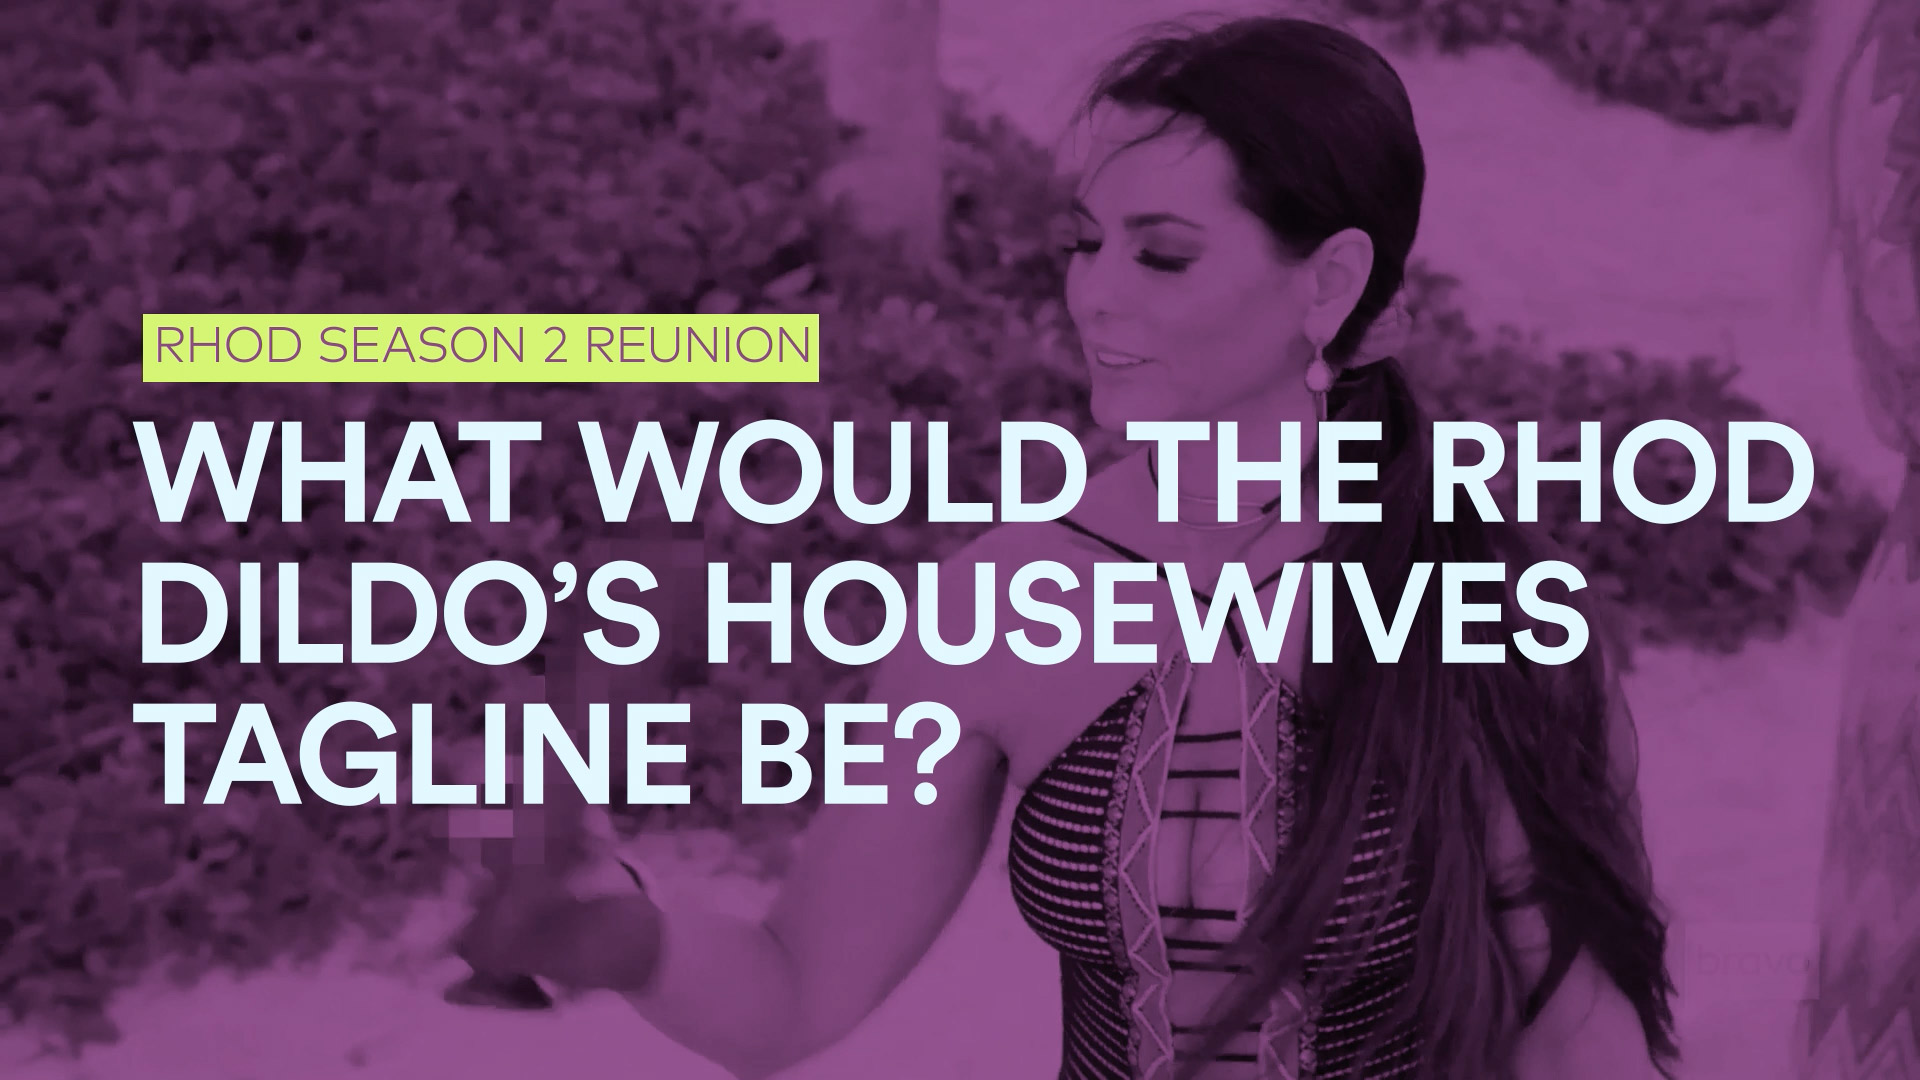 The RHOD Dildo's Housewives Tagline